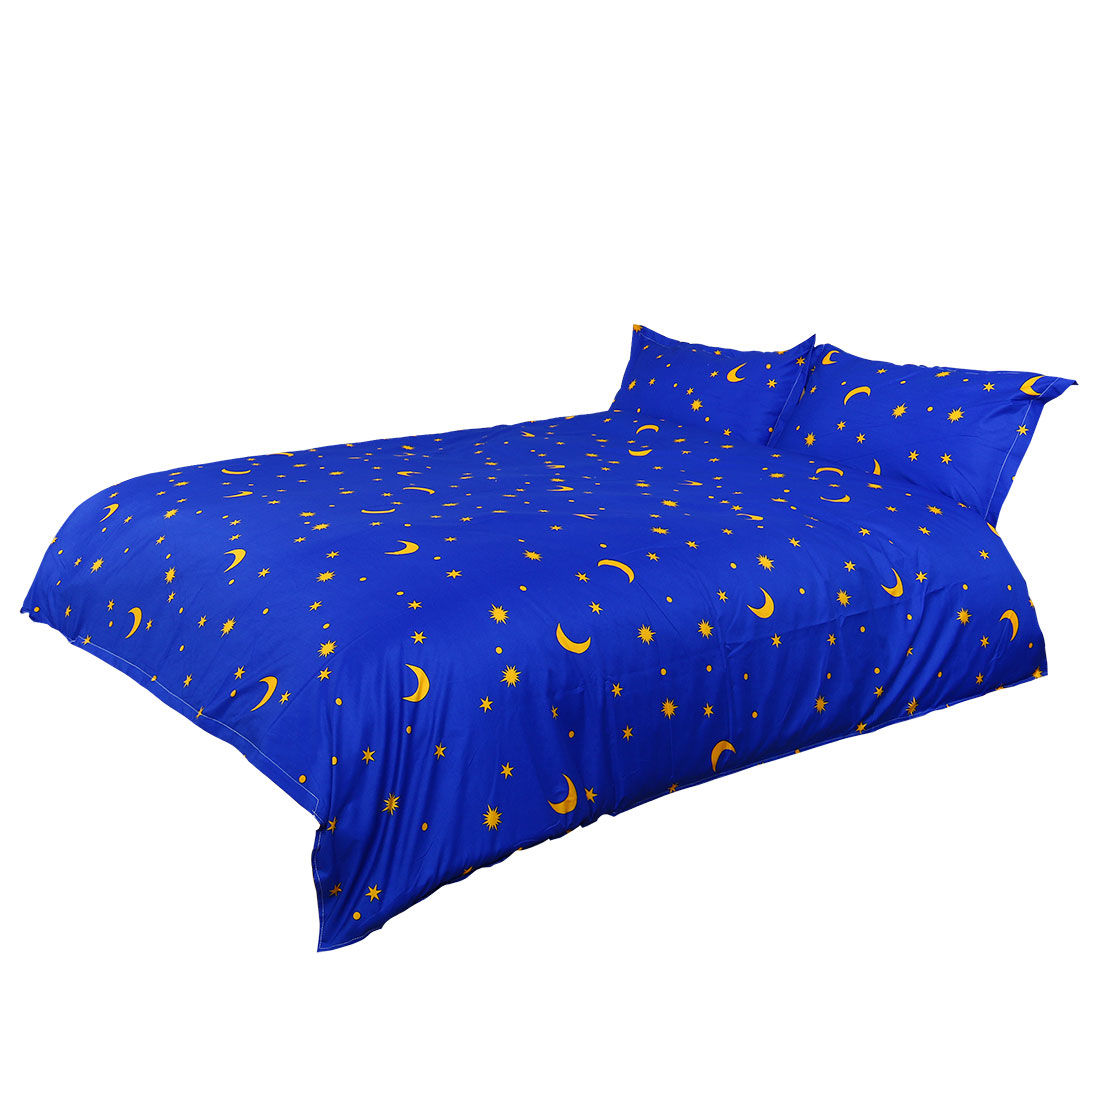 Blue Moon Stars Pattern Duvet Cover Pillowcase Quilt Cover Bedding Set Single Size